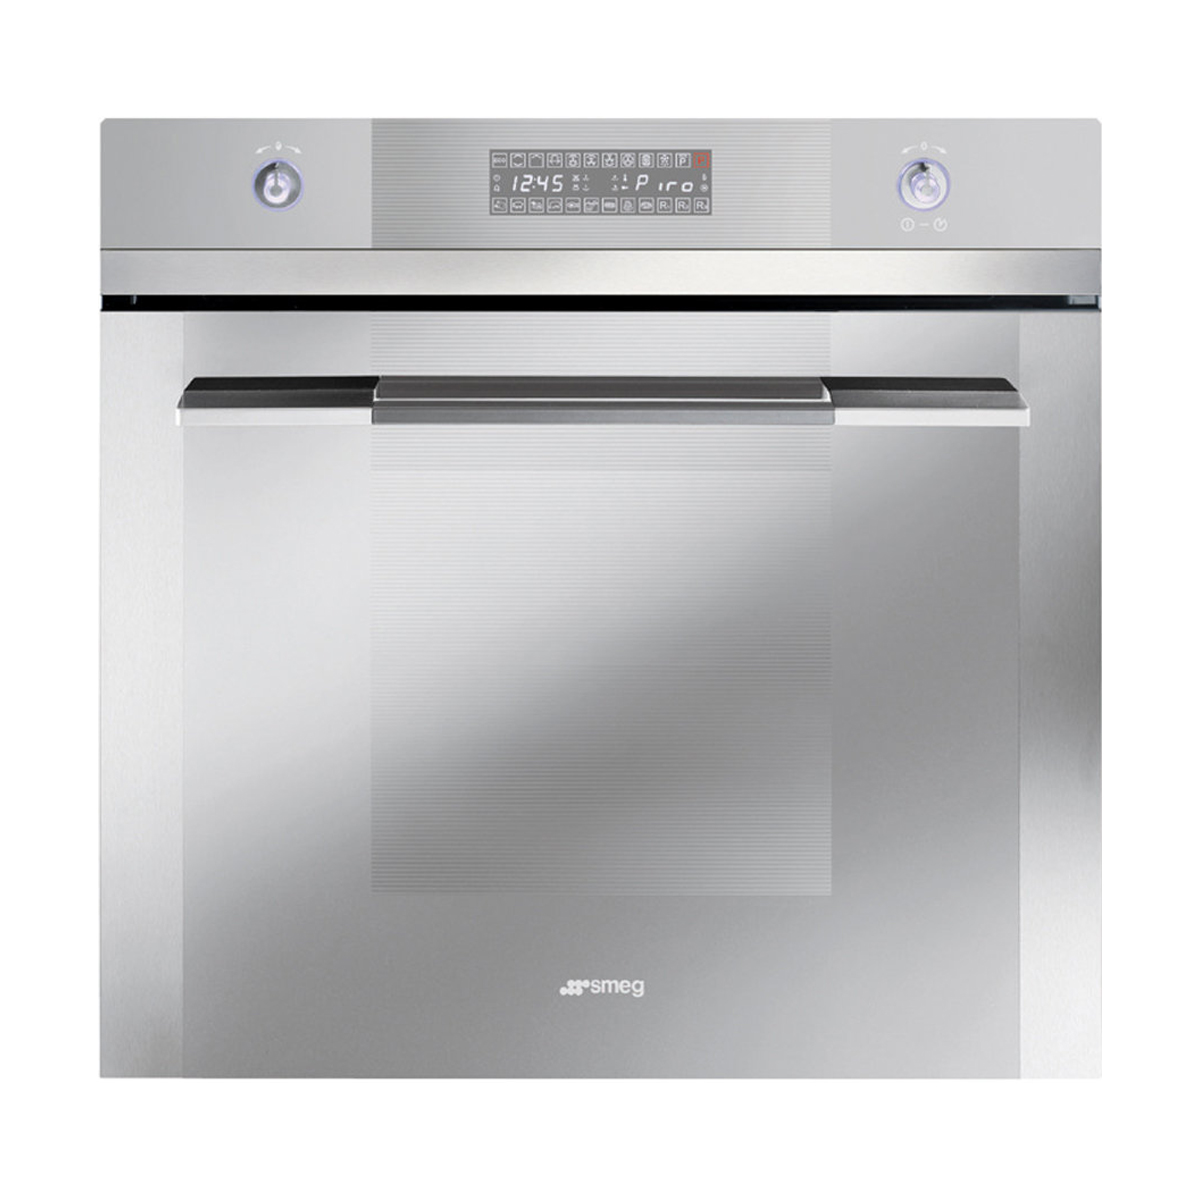 Smeg SAP1128 597mm Electric Built-In Pyrolytic Oven 49190